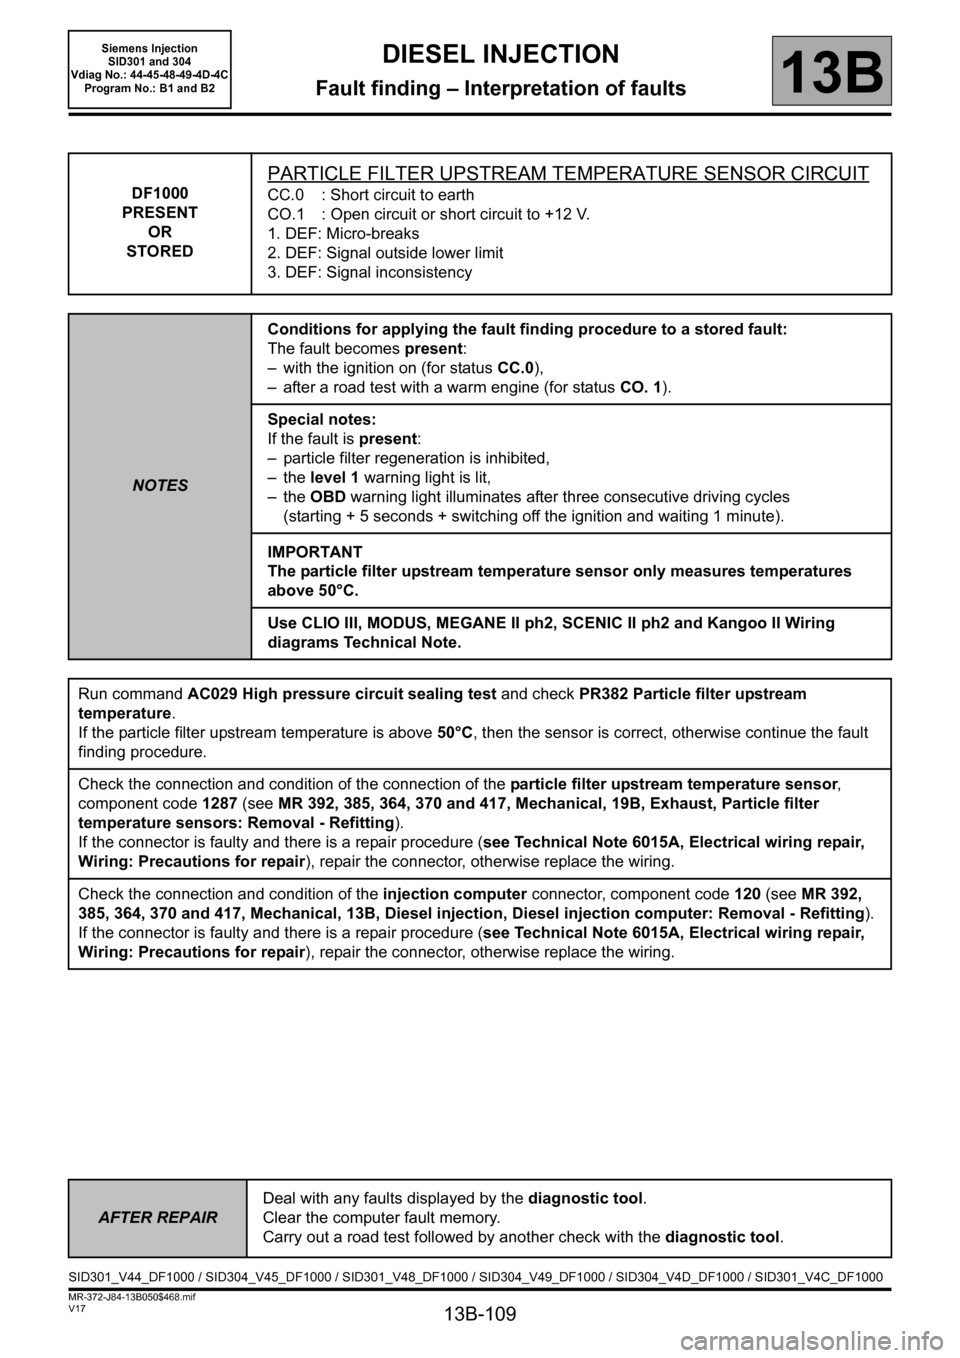 RENAULT SCENIC 2011 J95 / 3.G Engine And Peripherals Siemens Injection Workshop Manual, Page 109